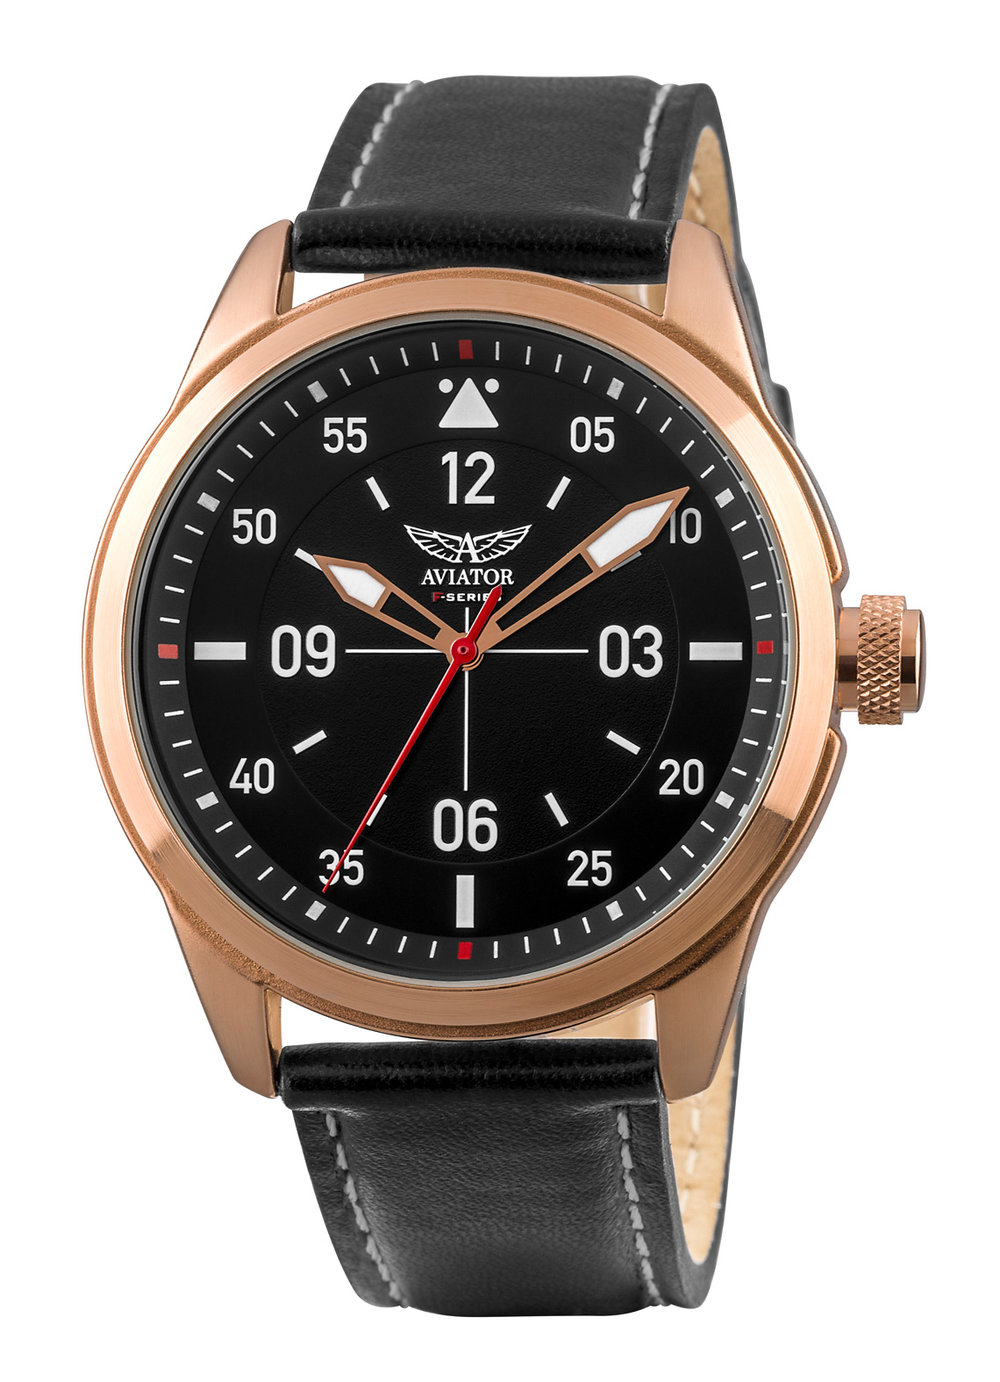 Rose Gold case. Black chronograph dial with calendar, luminous hands and hour indices. Rotating inner world time bezel. Integrated black leather strap. Water resistant to 10ATM. Two year international warranty.